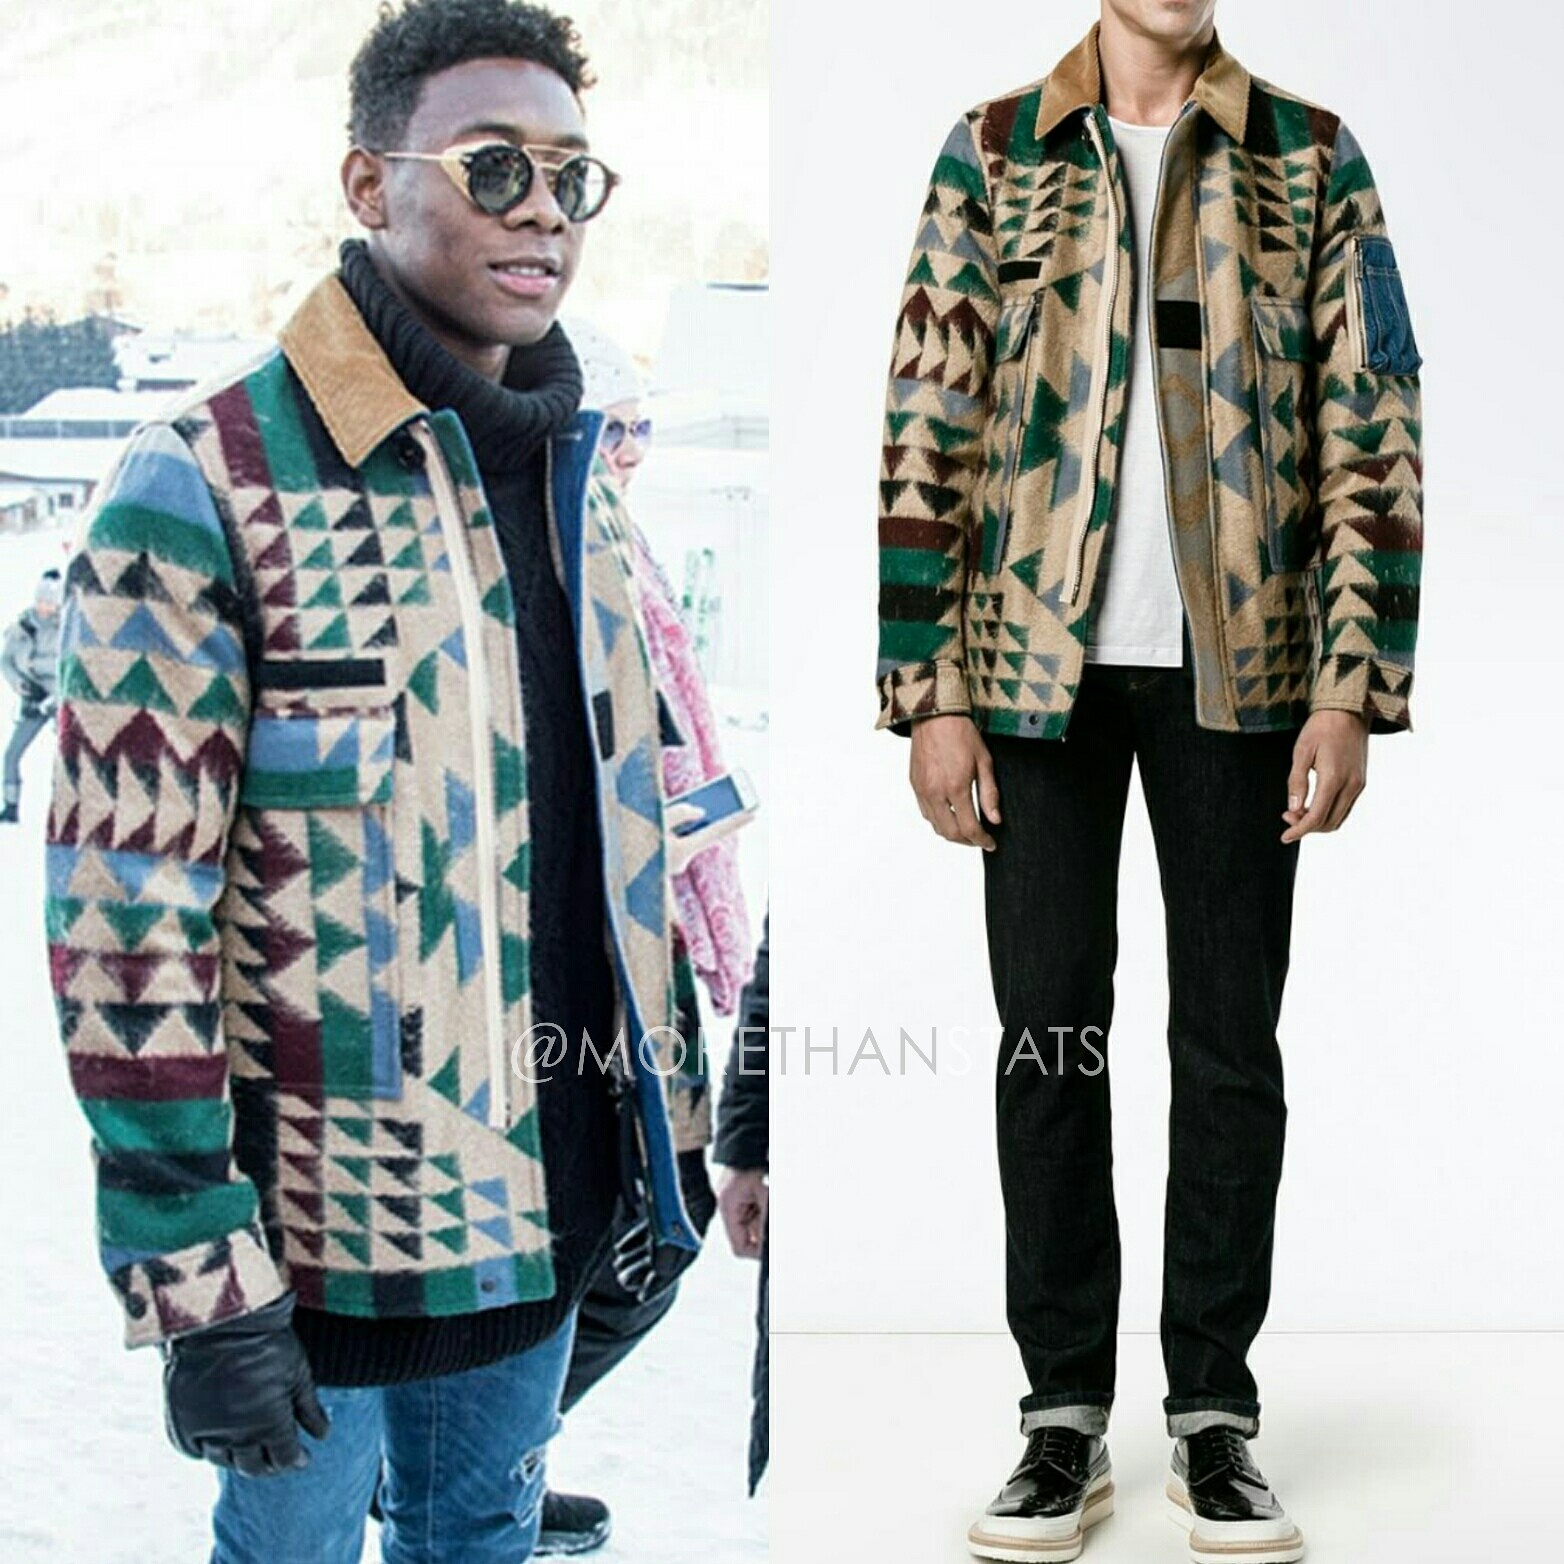 David Alaba's Valentino Navajo Print Men's Fashion Jacket & Thom Browne Visor Sunglasses